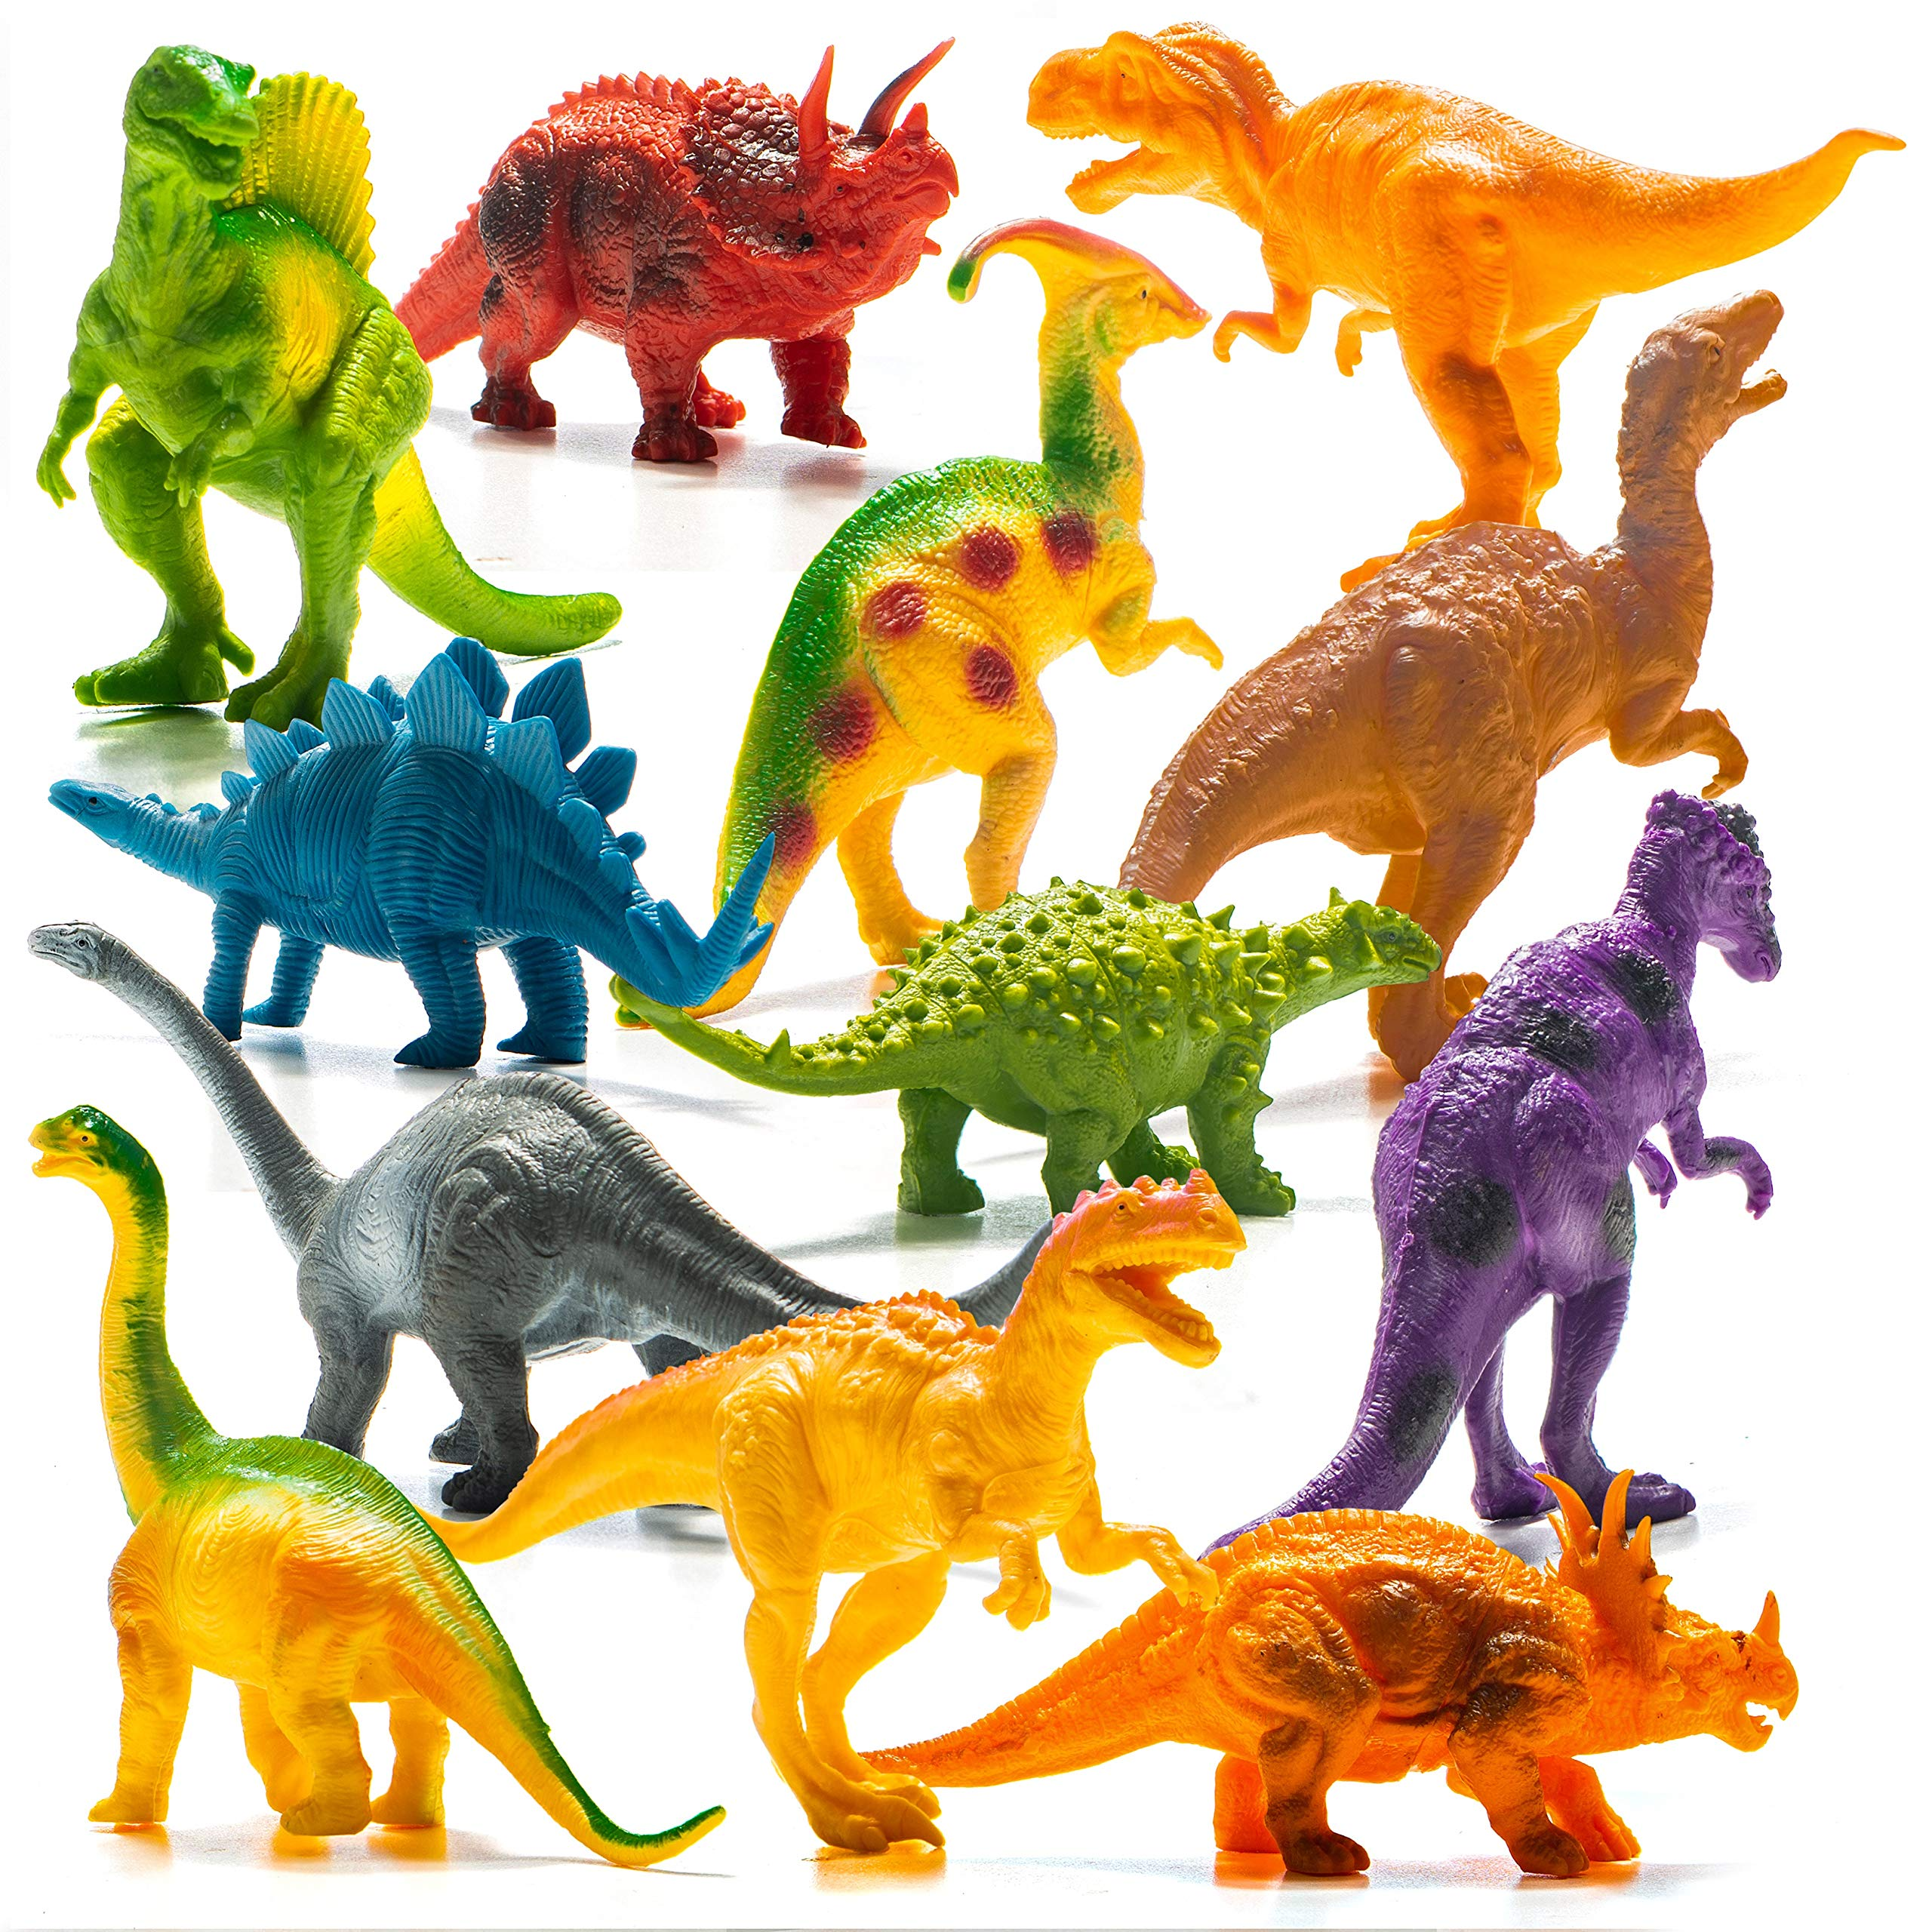 Prextex Realistic Looking 7'' Dinosaurs Pack of 12 Large Plastic Assorted Dinosaur Figures with Dinosaur Book by Prextex